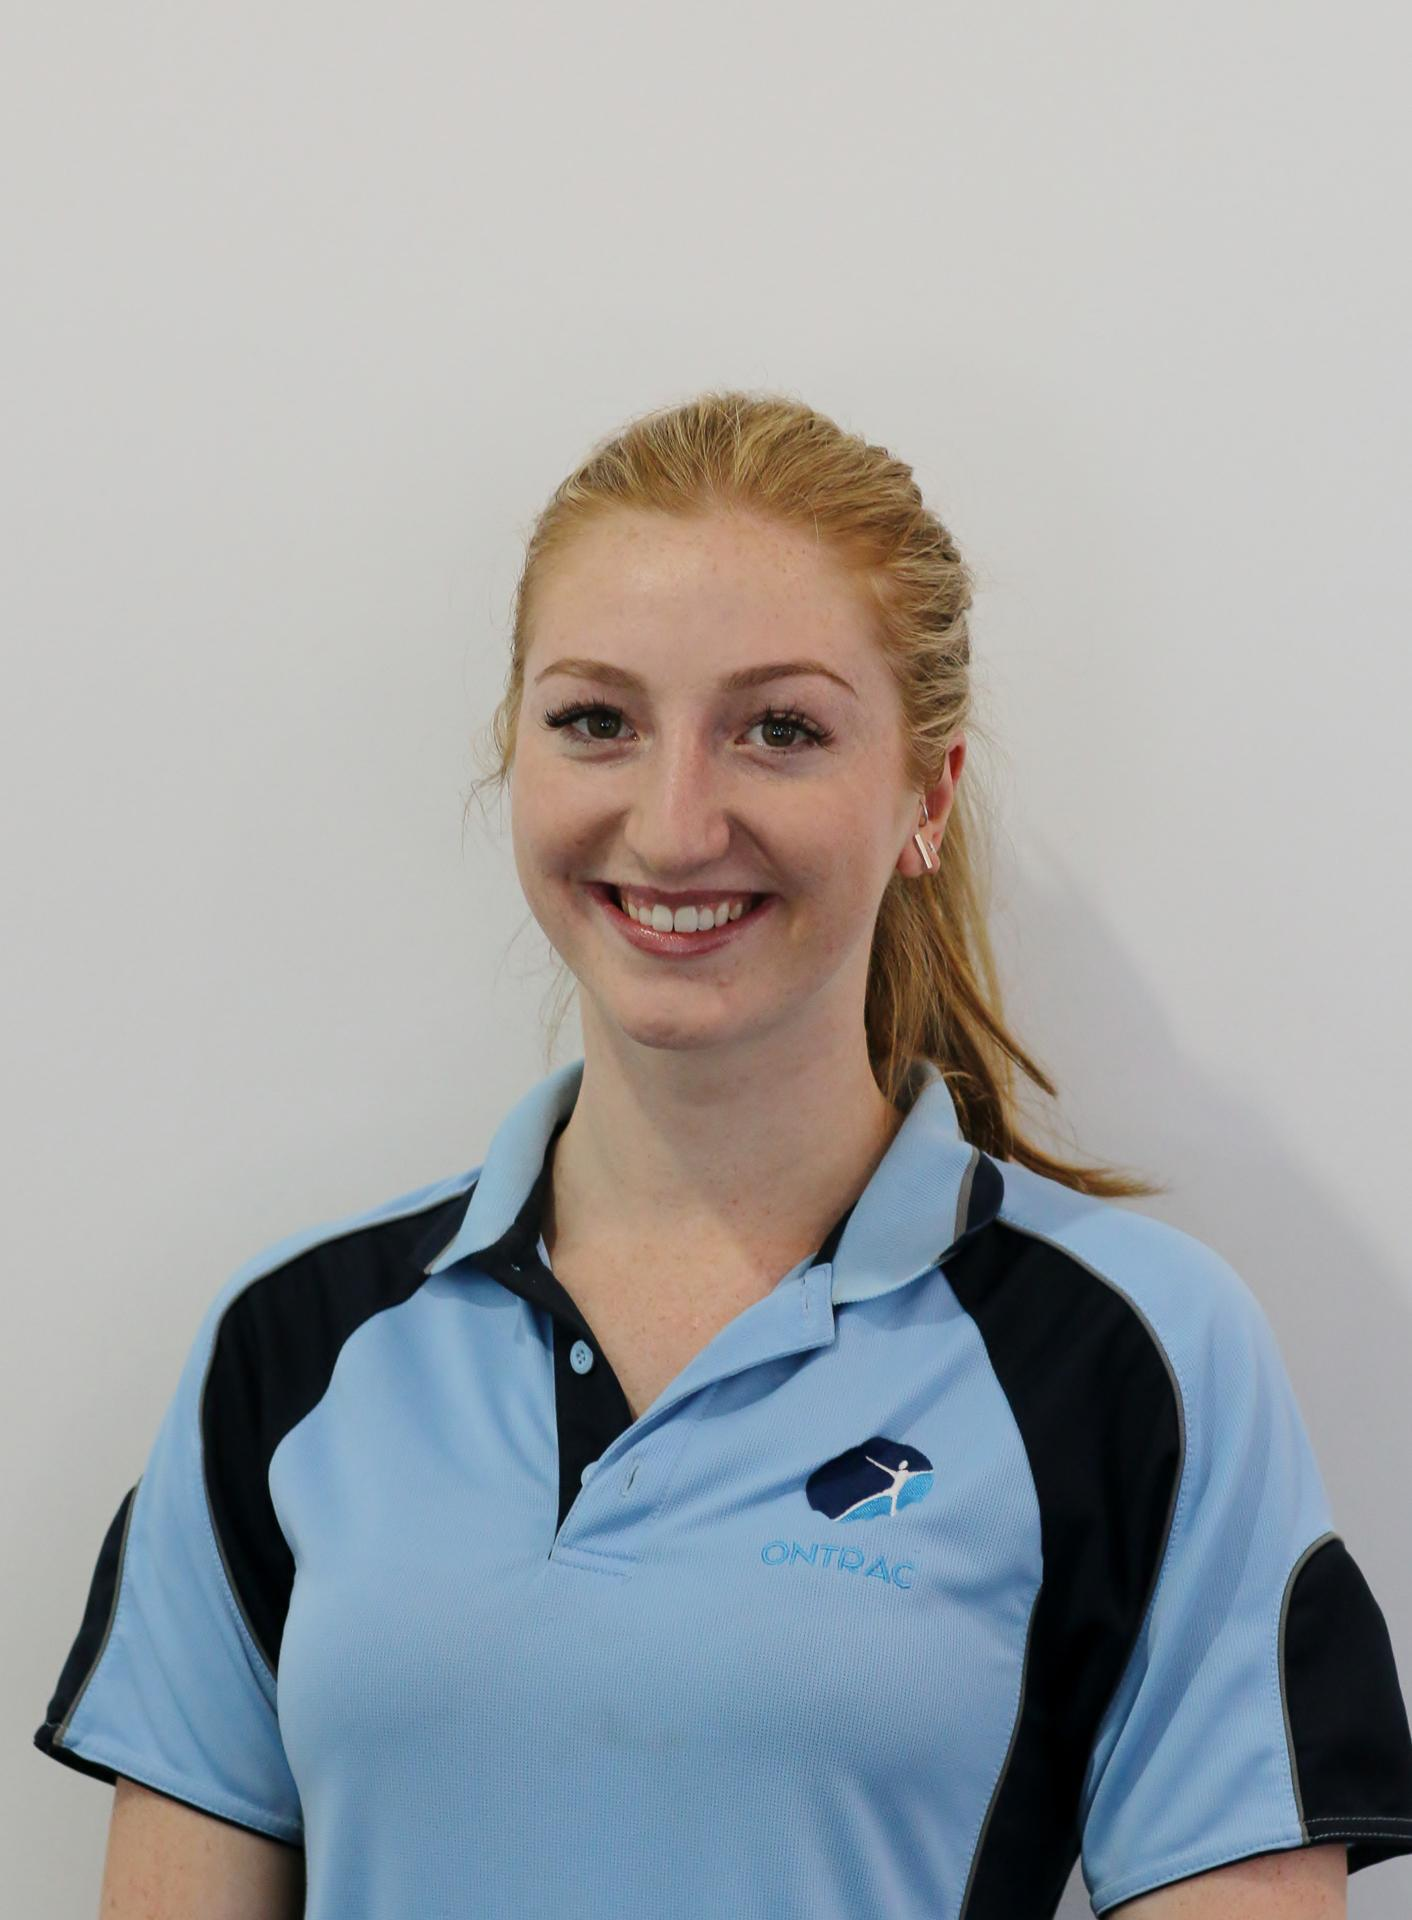 Bree Spearman - Accredited Exercise Physiologist - Campbelltown Clinic